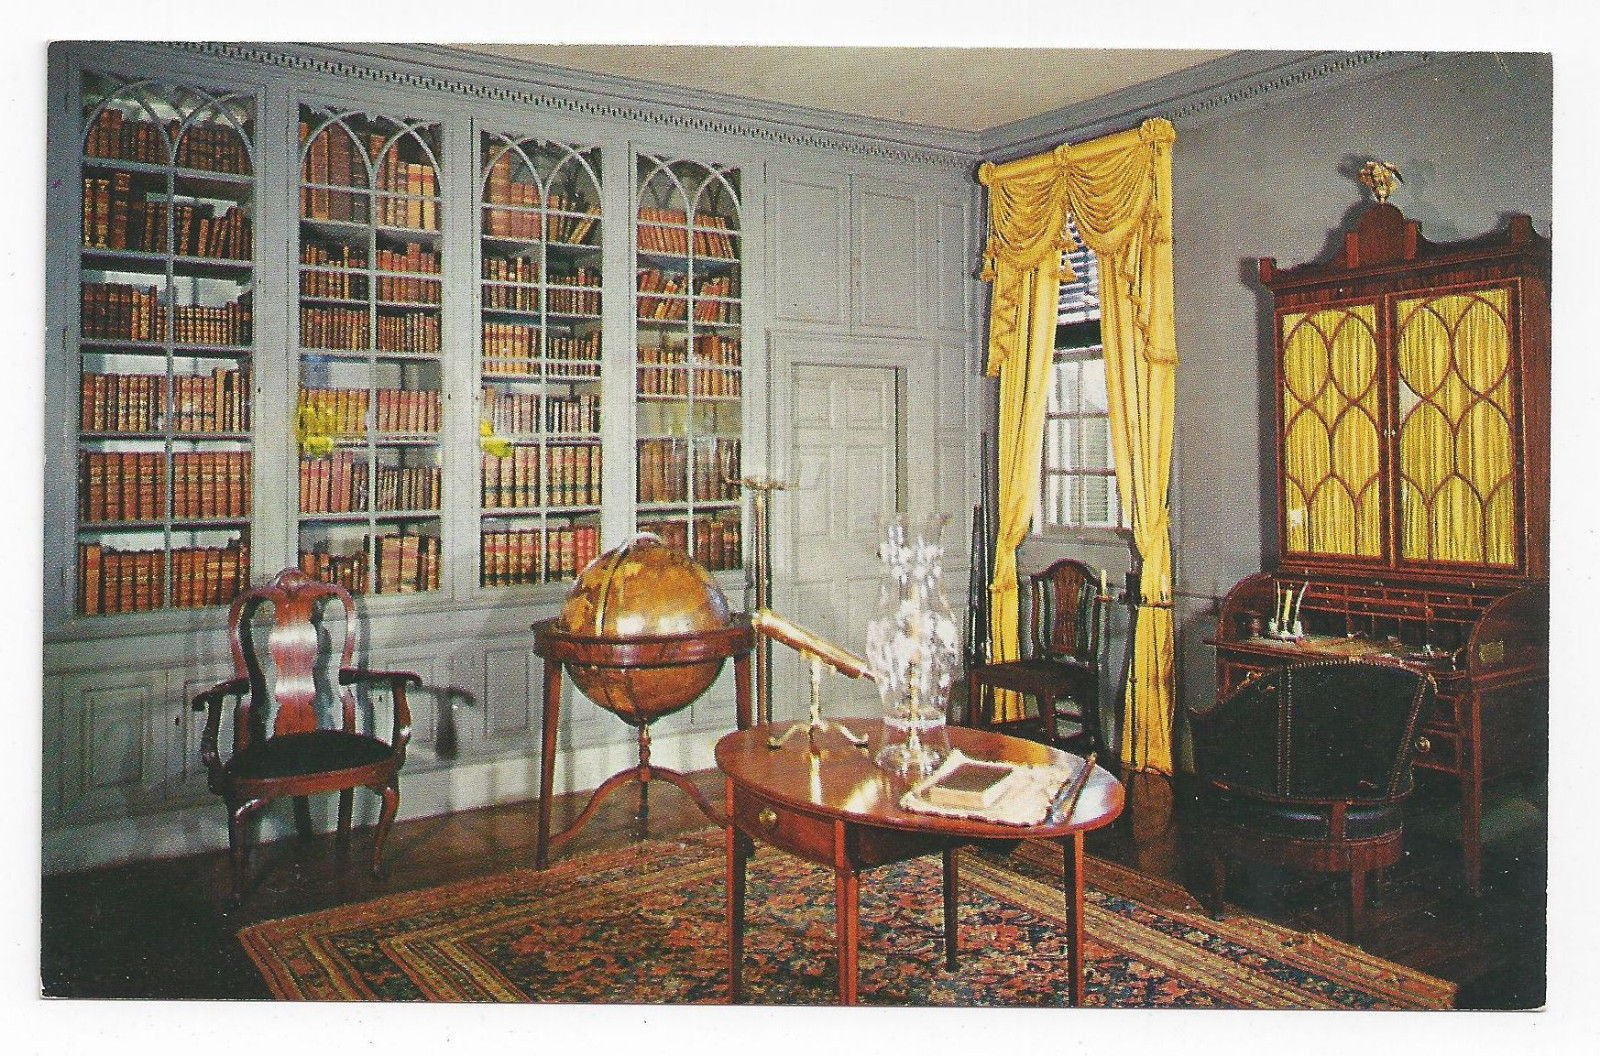 Va mount vernon interior the library george washington vintage